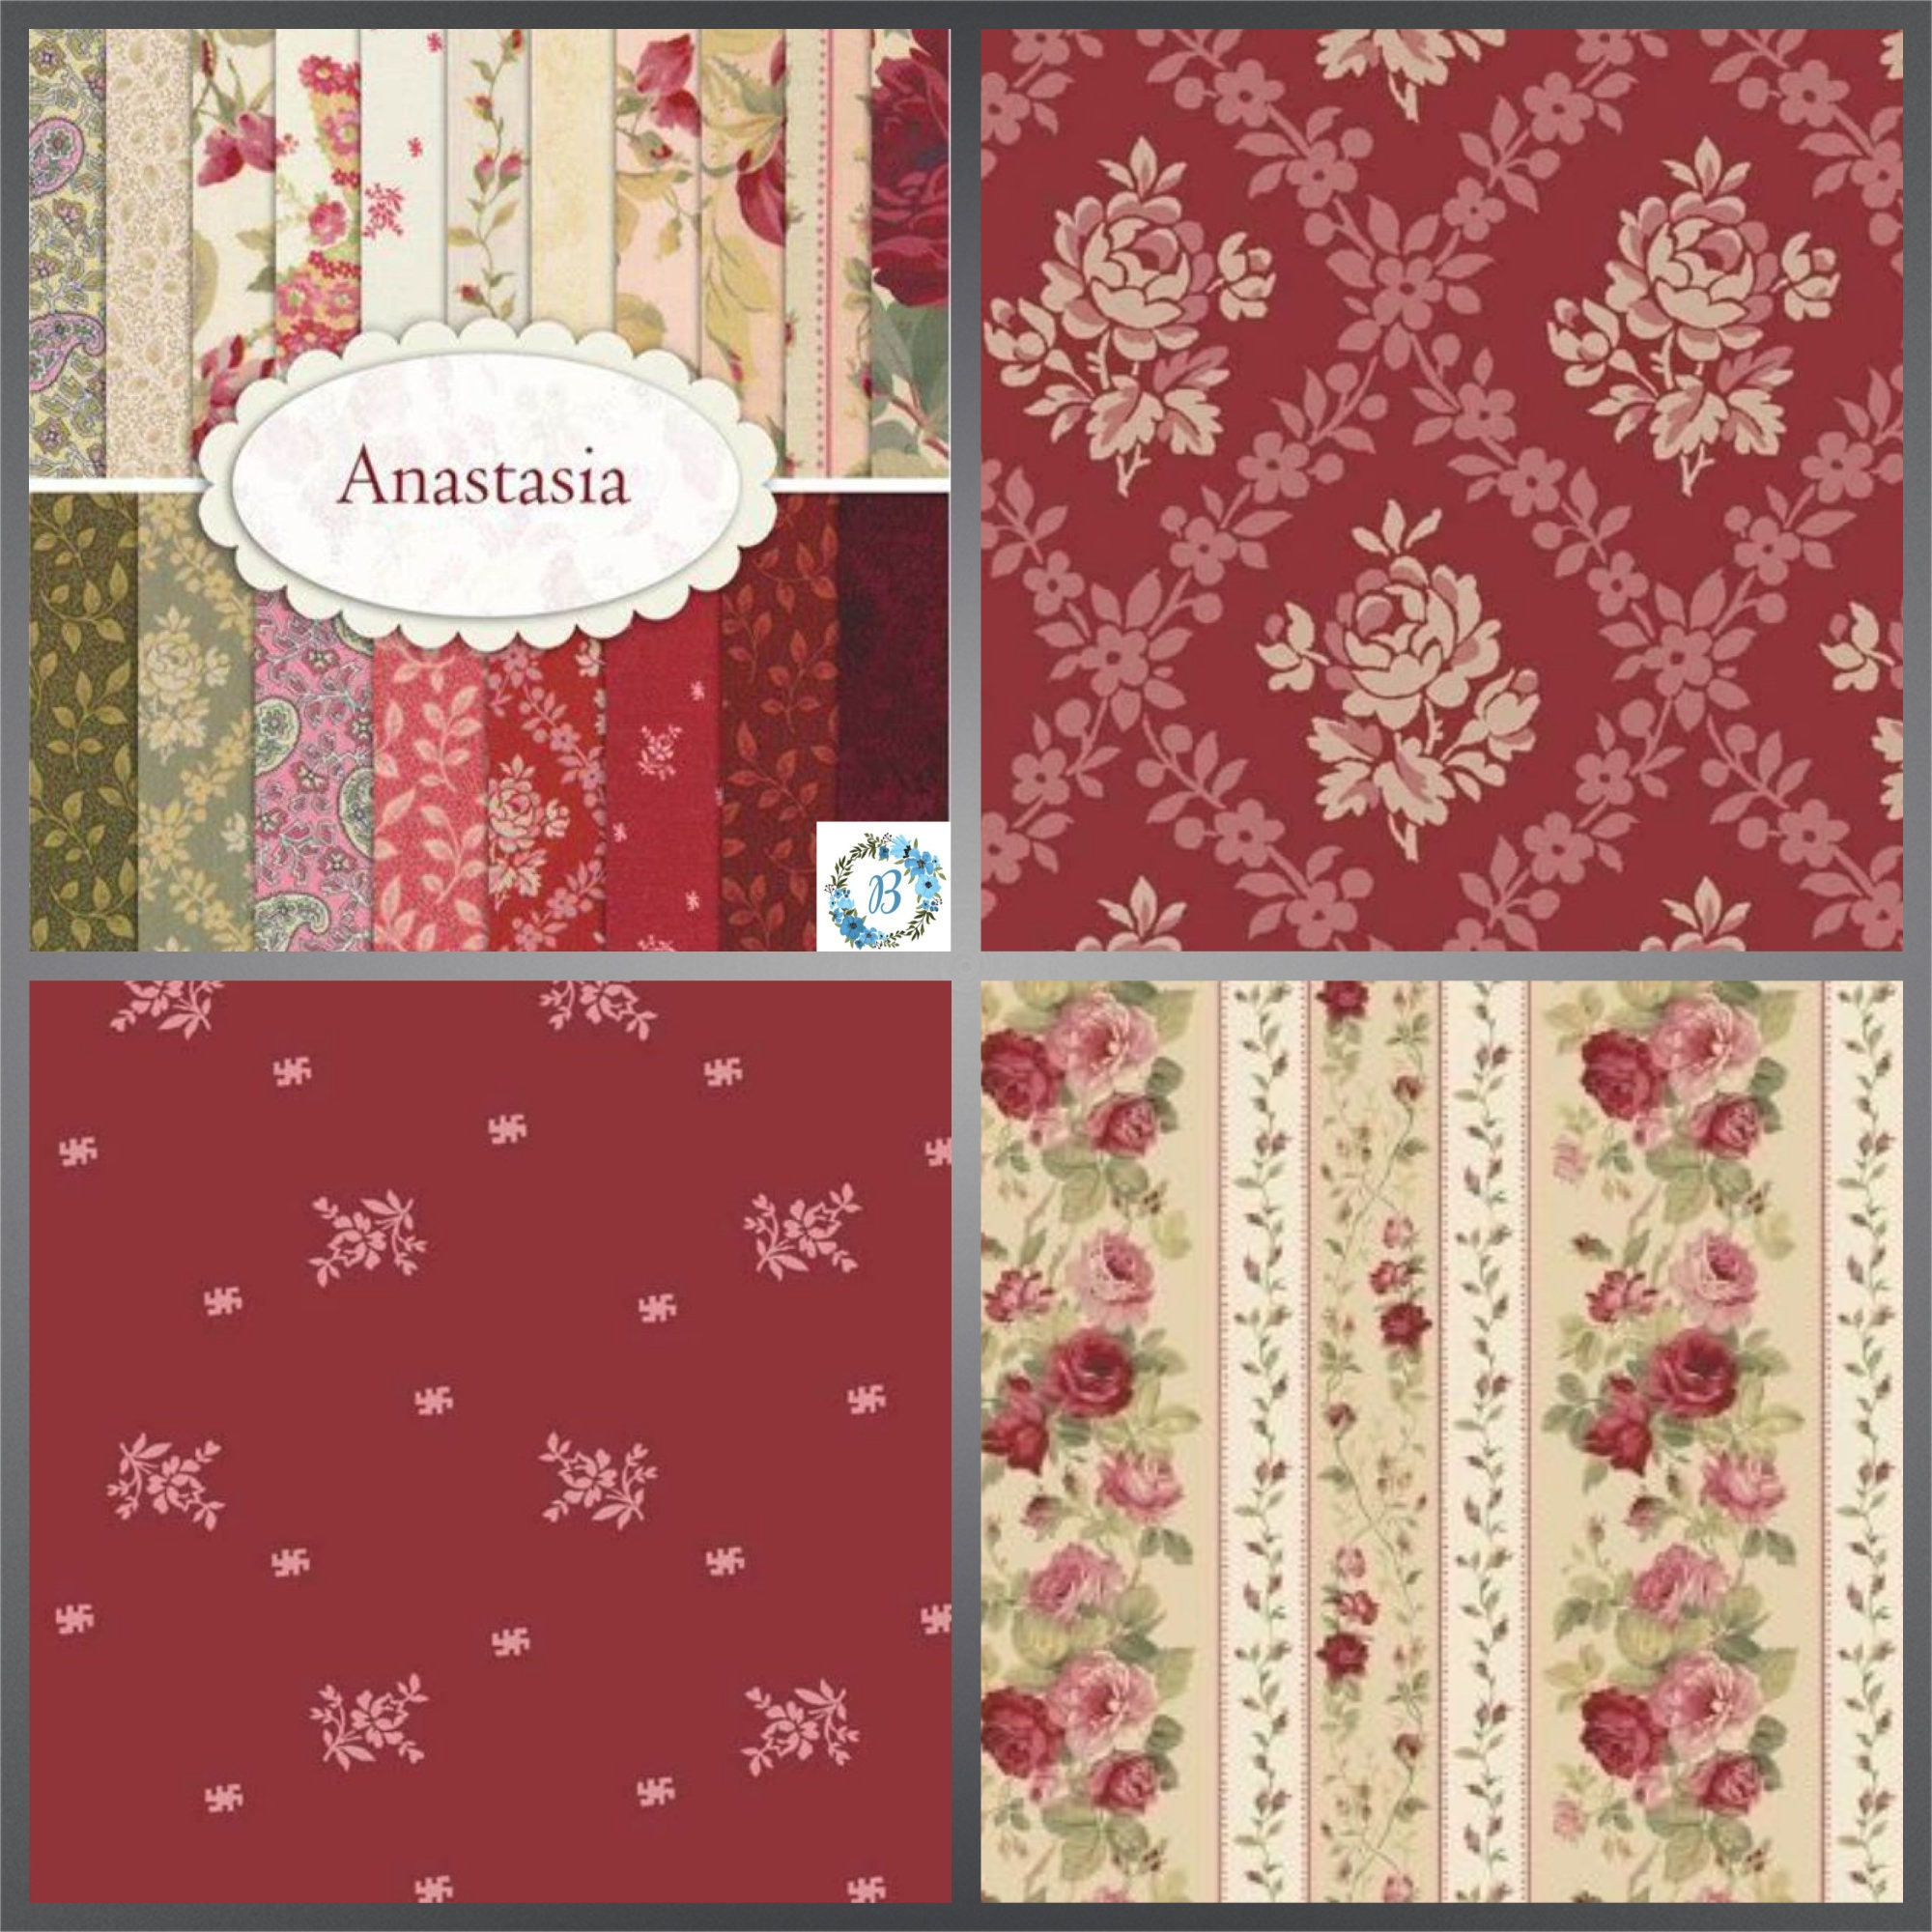 Anastasia This Long Awaited Collection Is Here Grab Your Bundle Today And Enjoy Making A Home Decor Project Especially For You